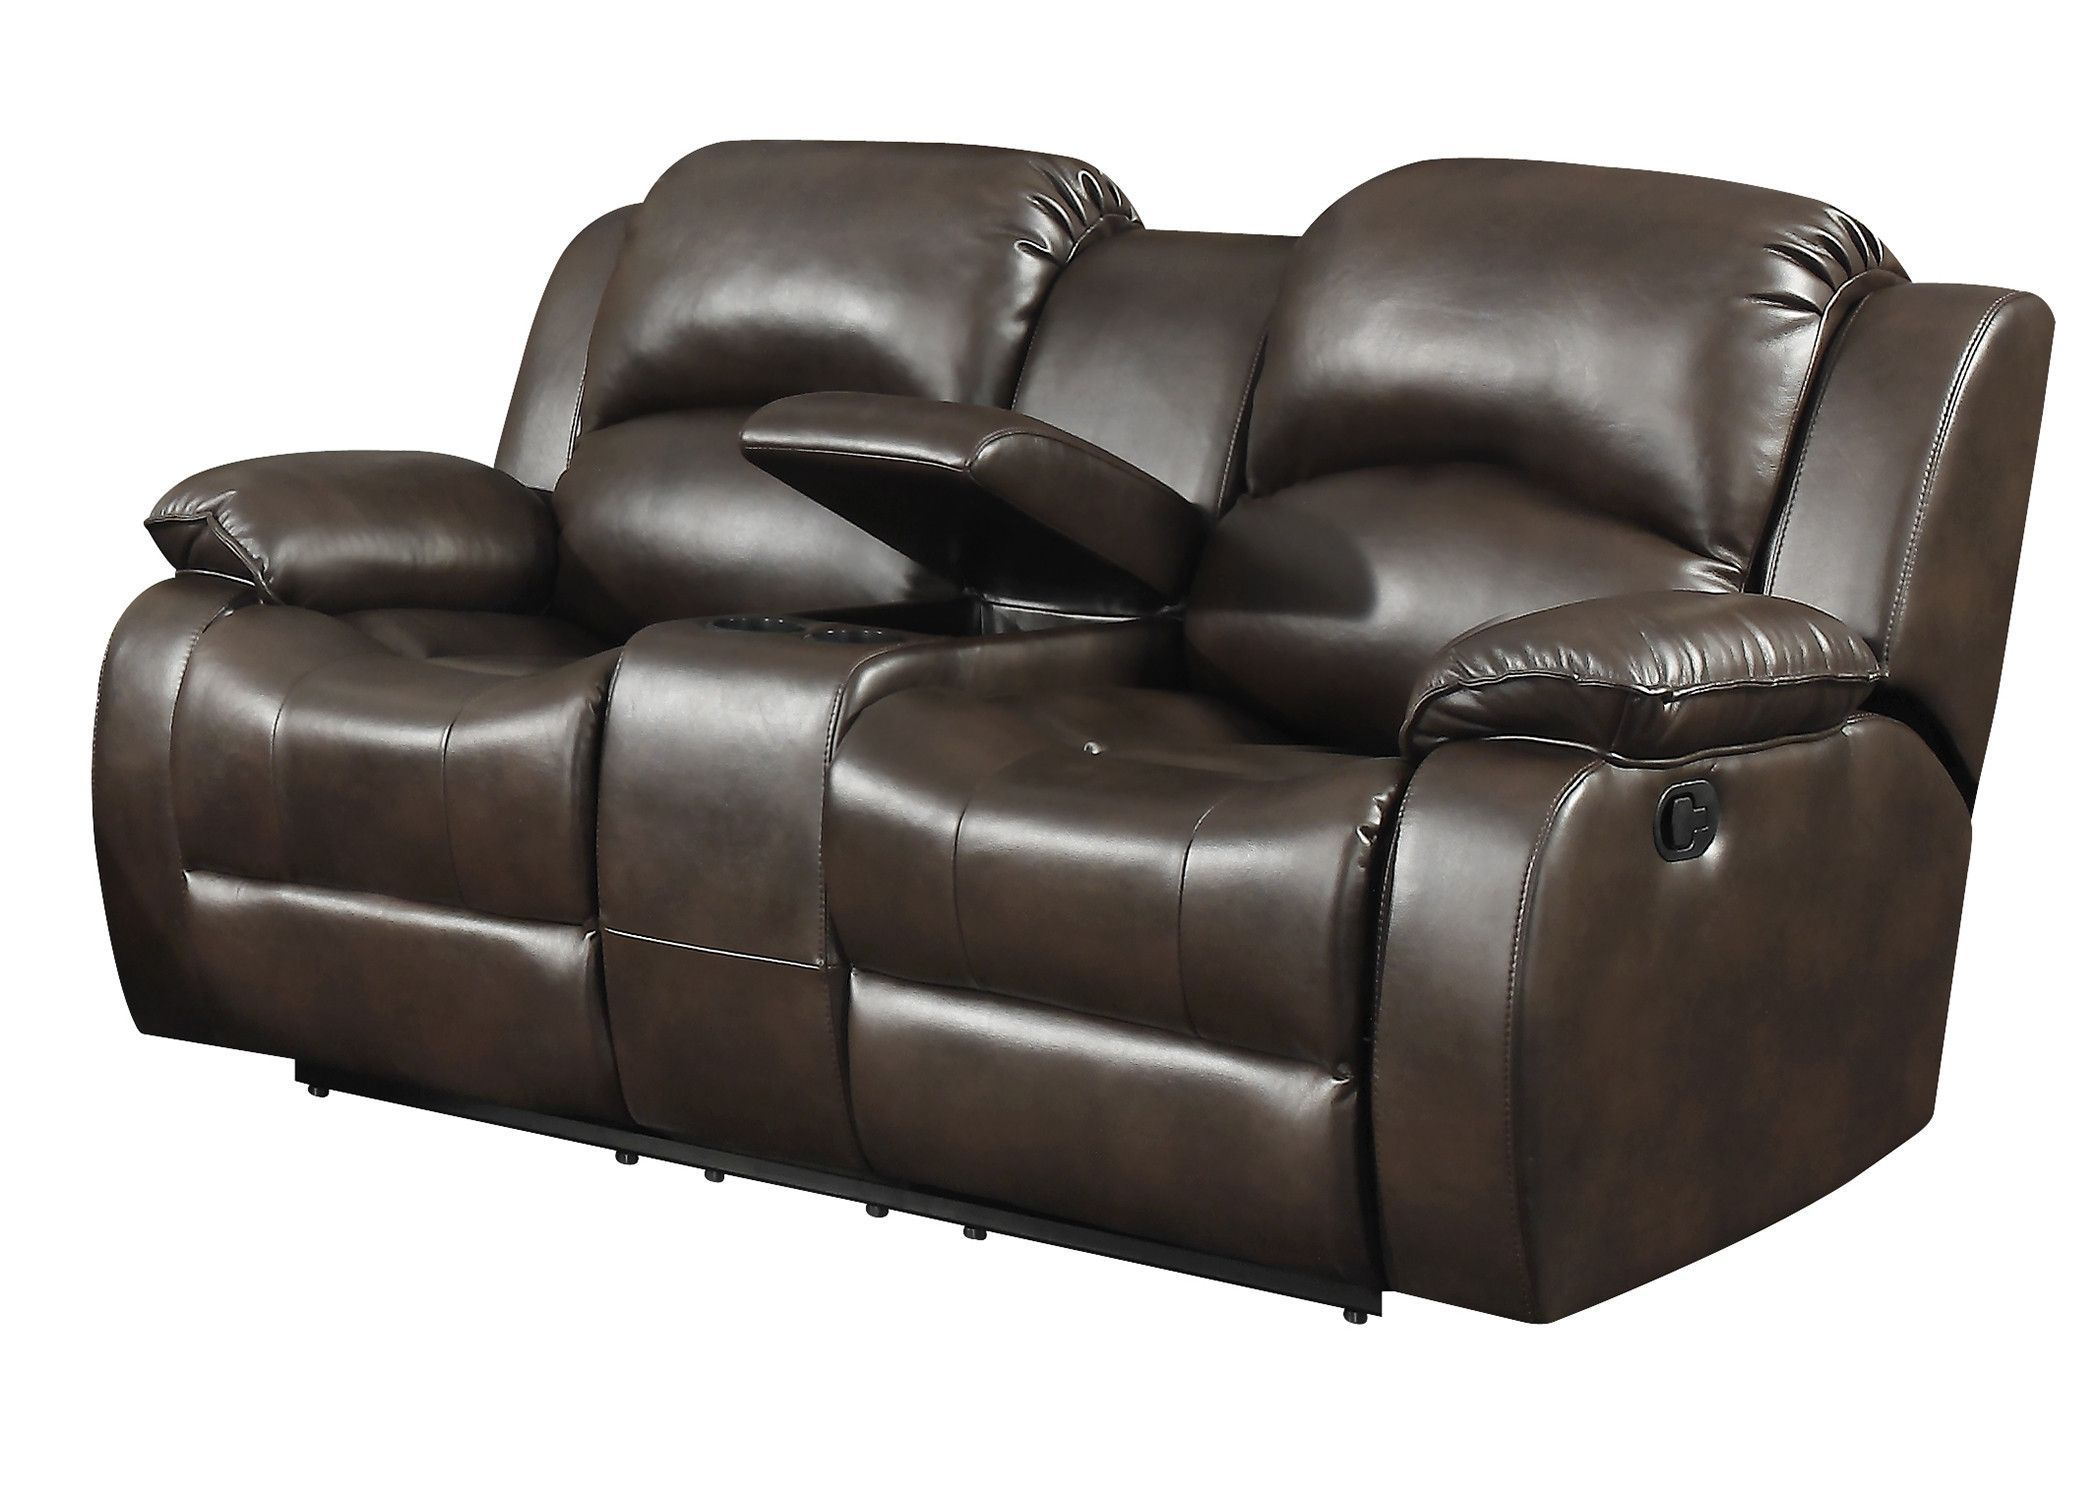 with seater both center sofas dual ends of console full size leather rocking couch recliner recliners on black reclining power and sofa loveseat curved